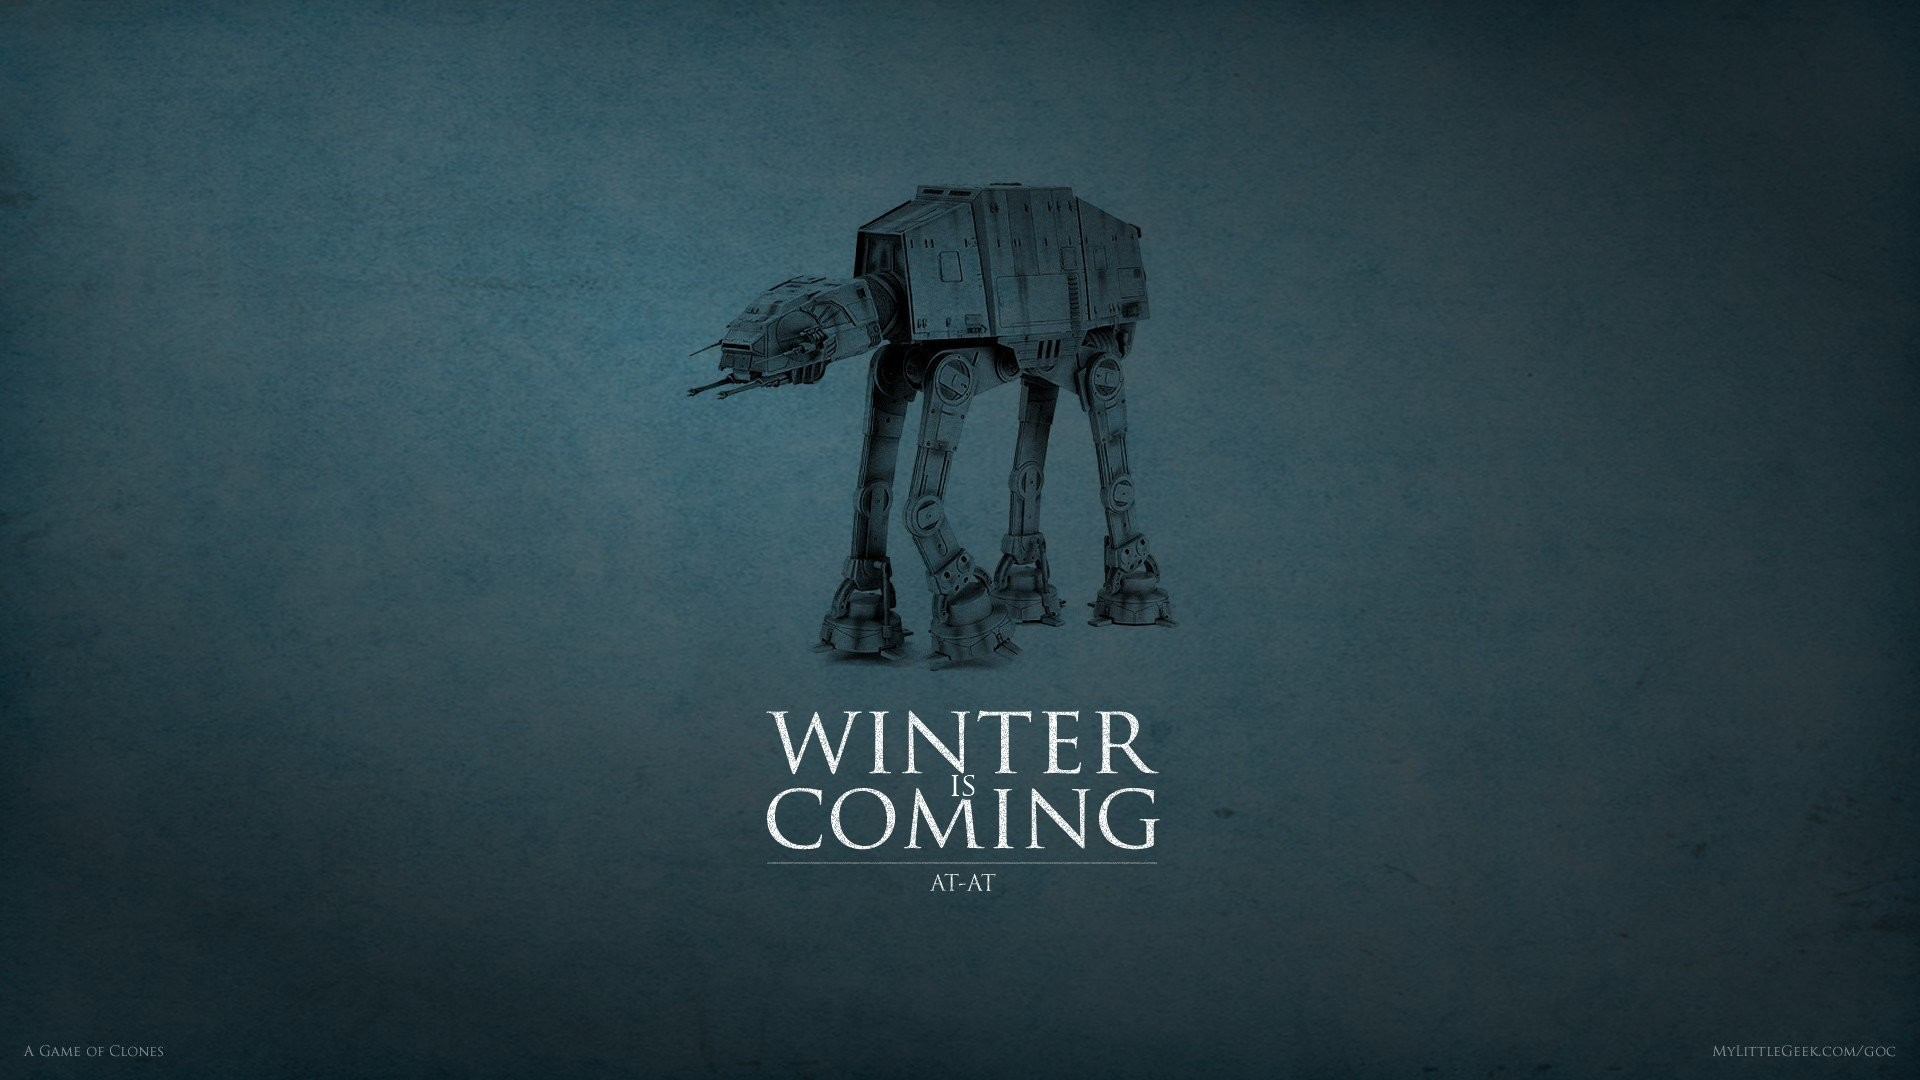 Res: 1920x1080, game of thrones house stark star wars at-at